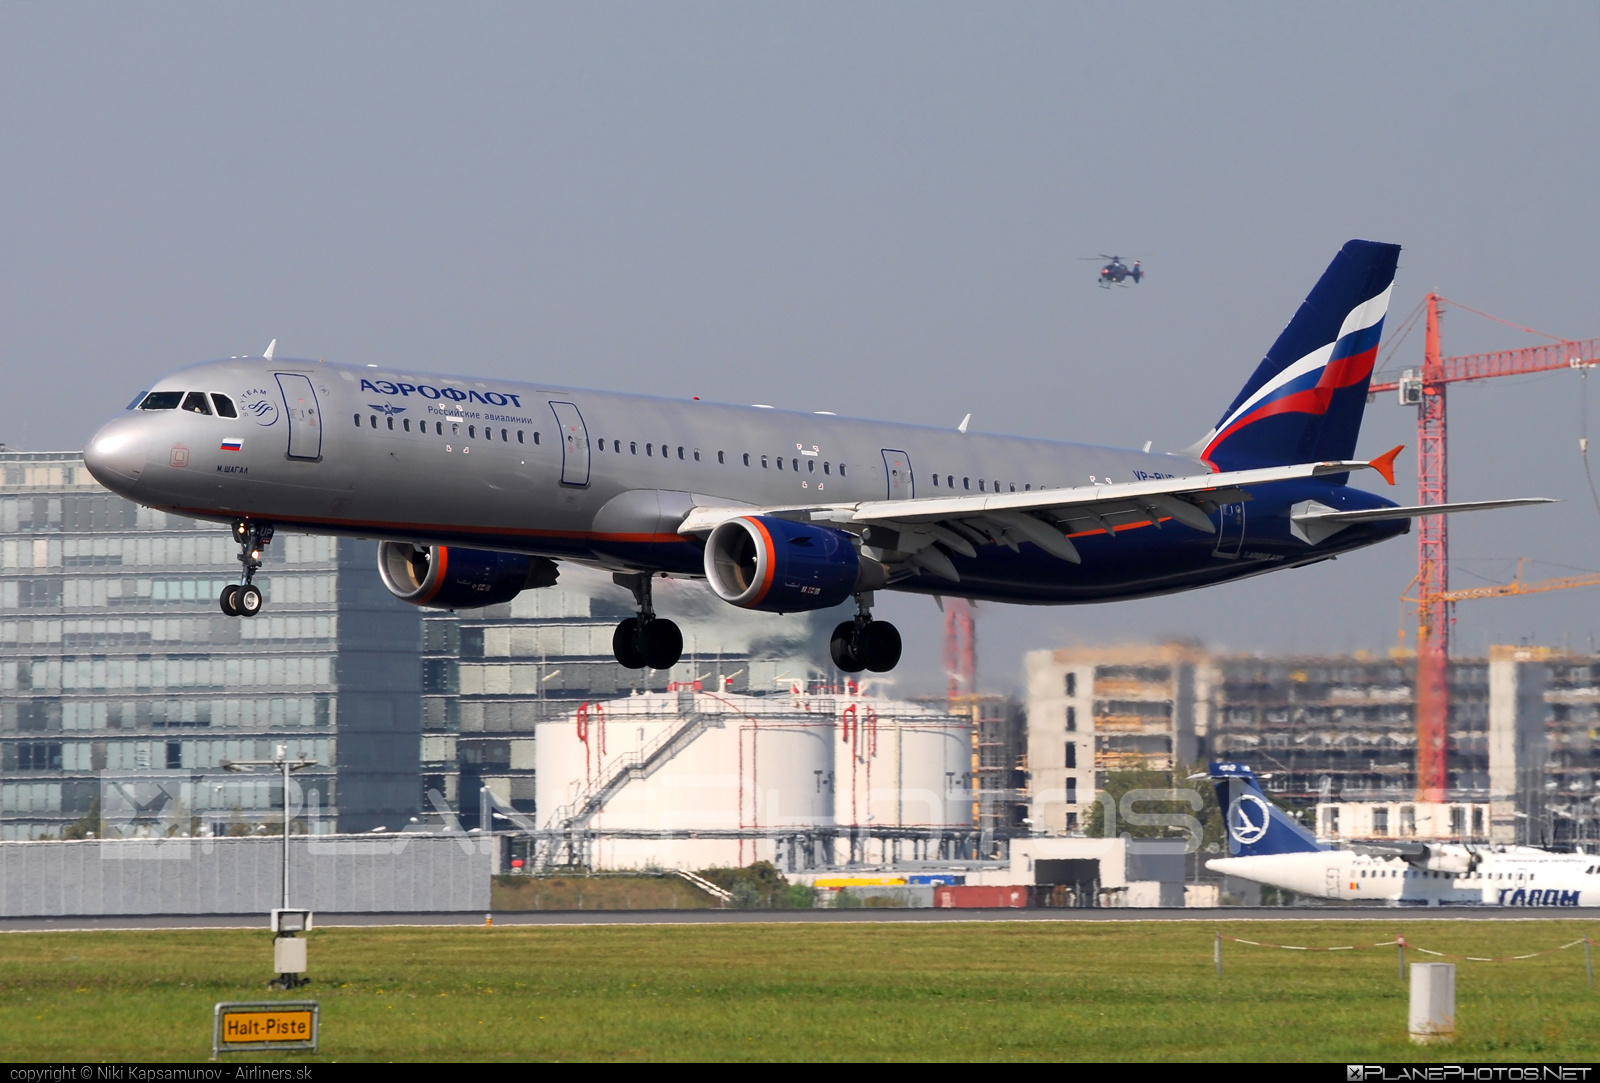 Airbus A321-211 - VP-BUP operated by Aeroflot #a320family #a321 #aeroflot #airbus #airbus321